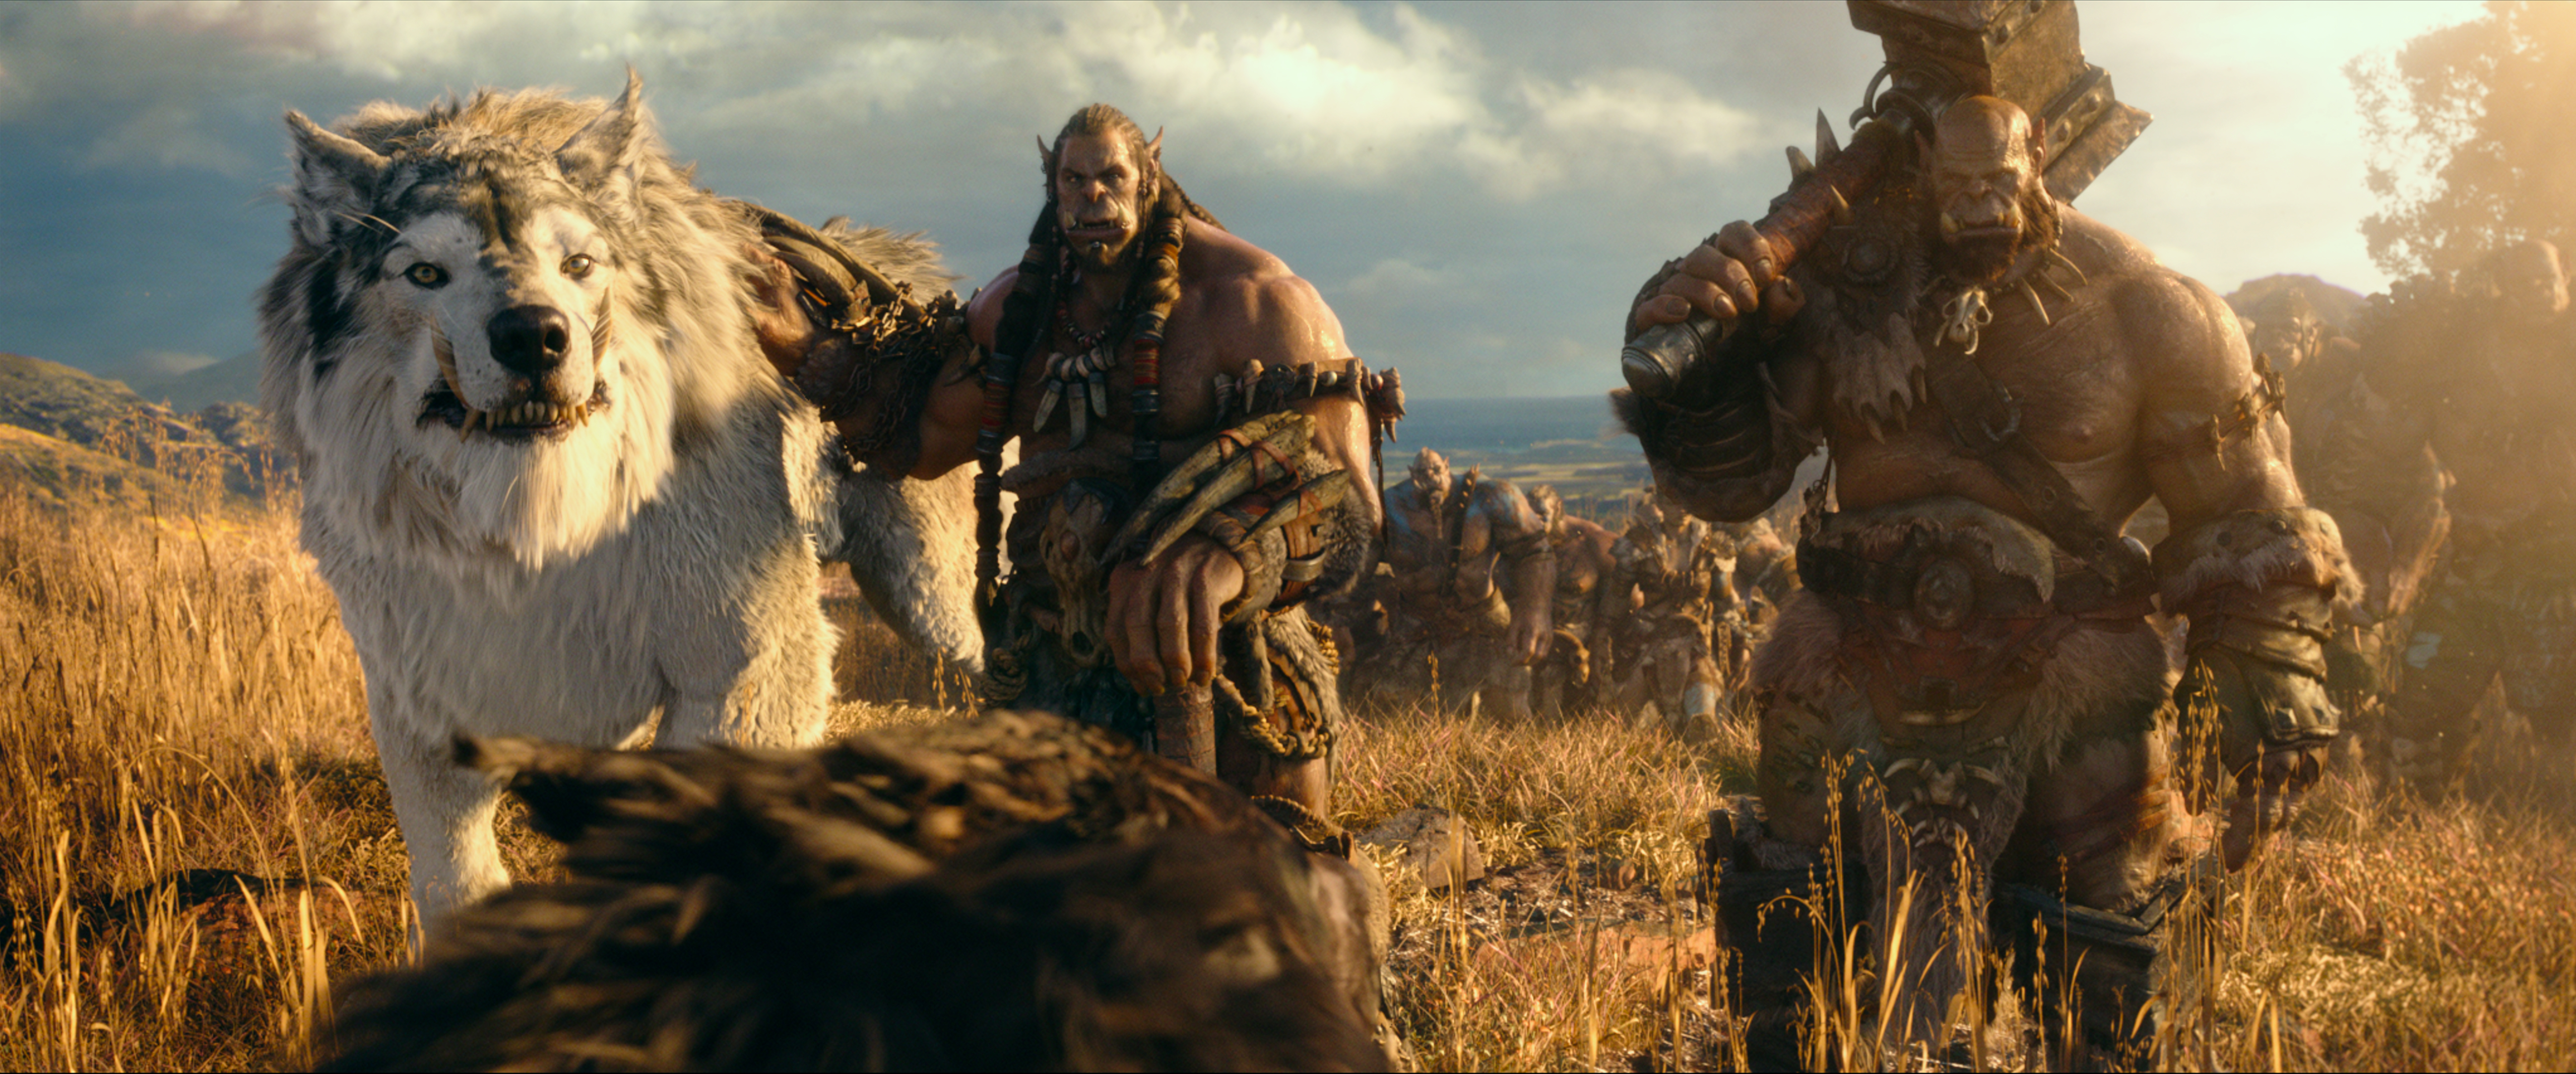 Warcraft' Movie Review - Rolling Stone